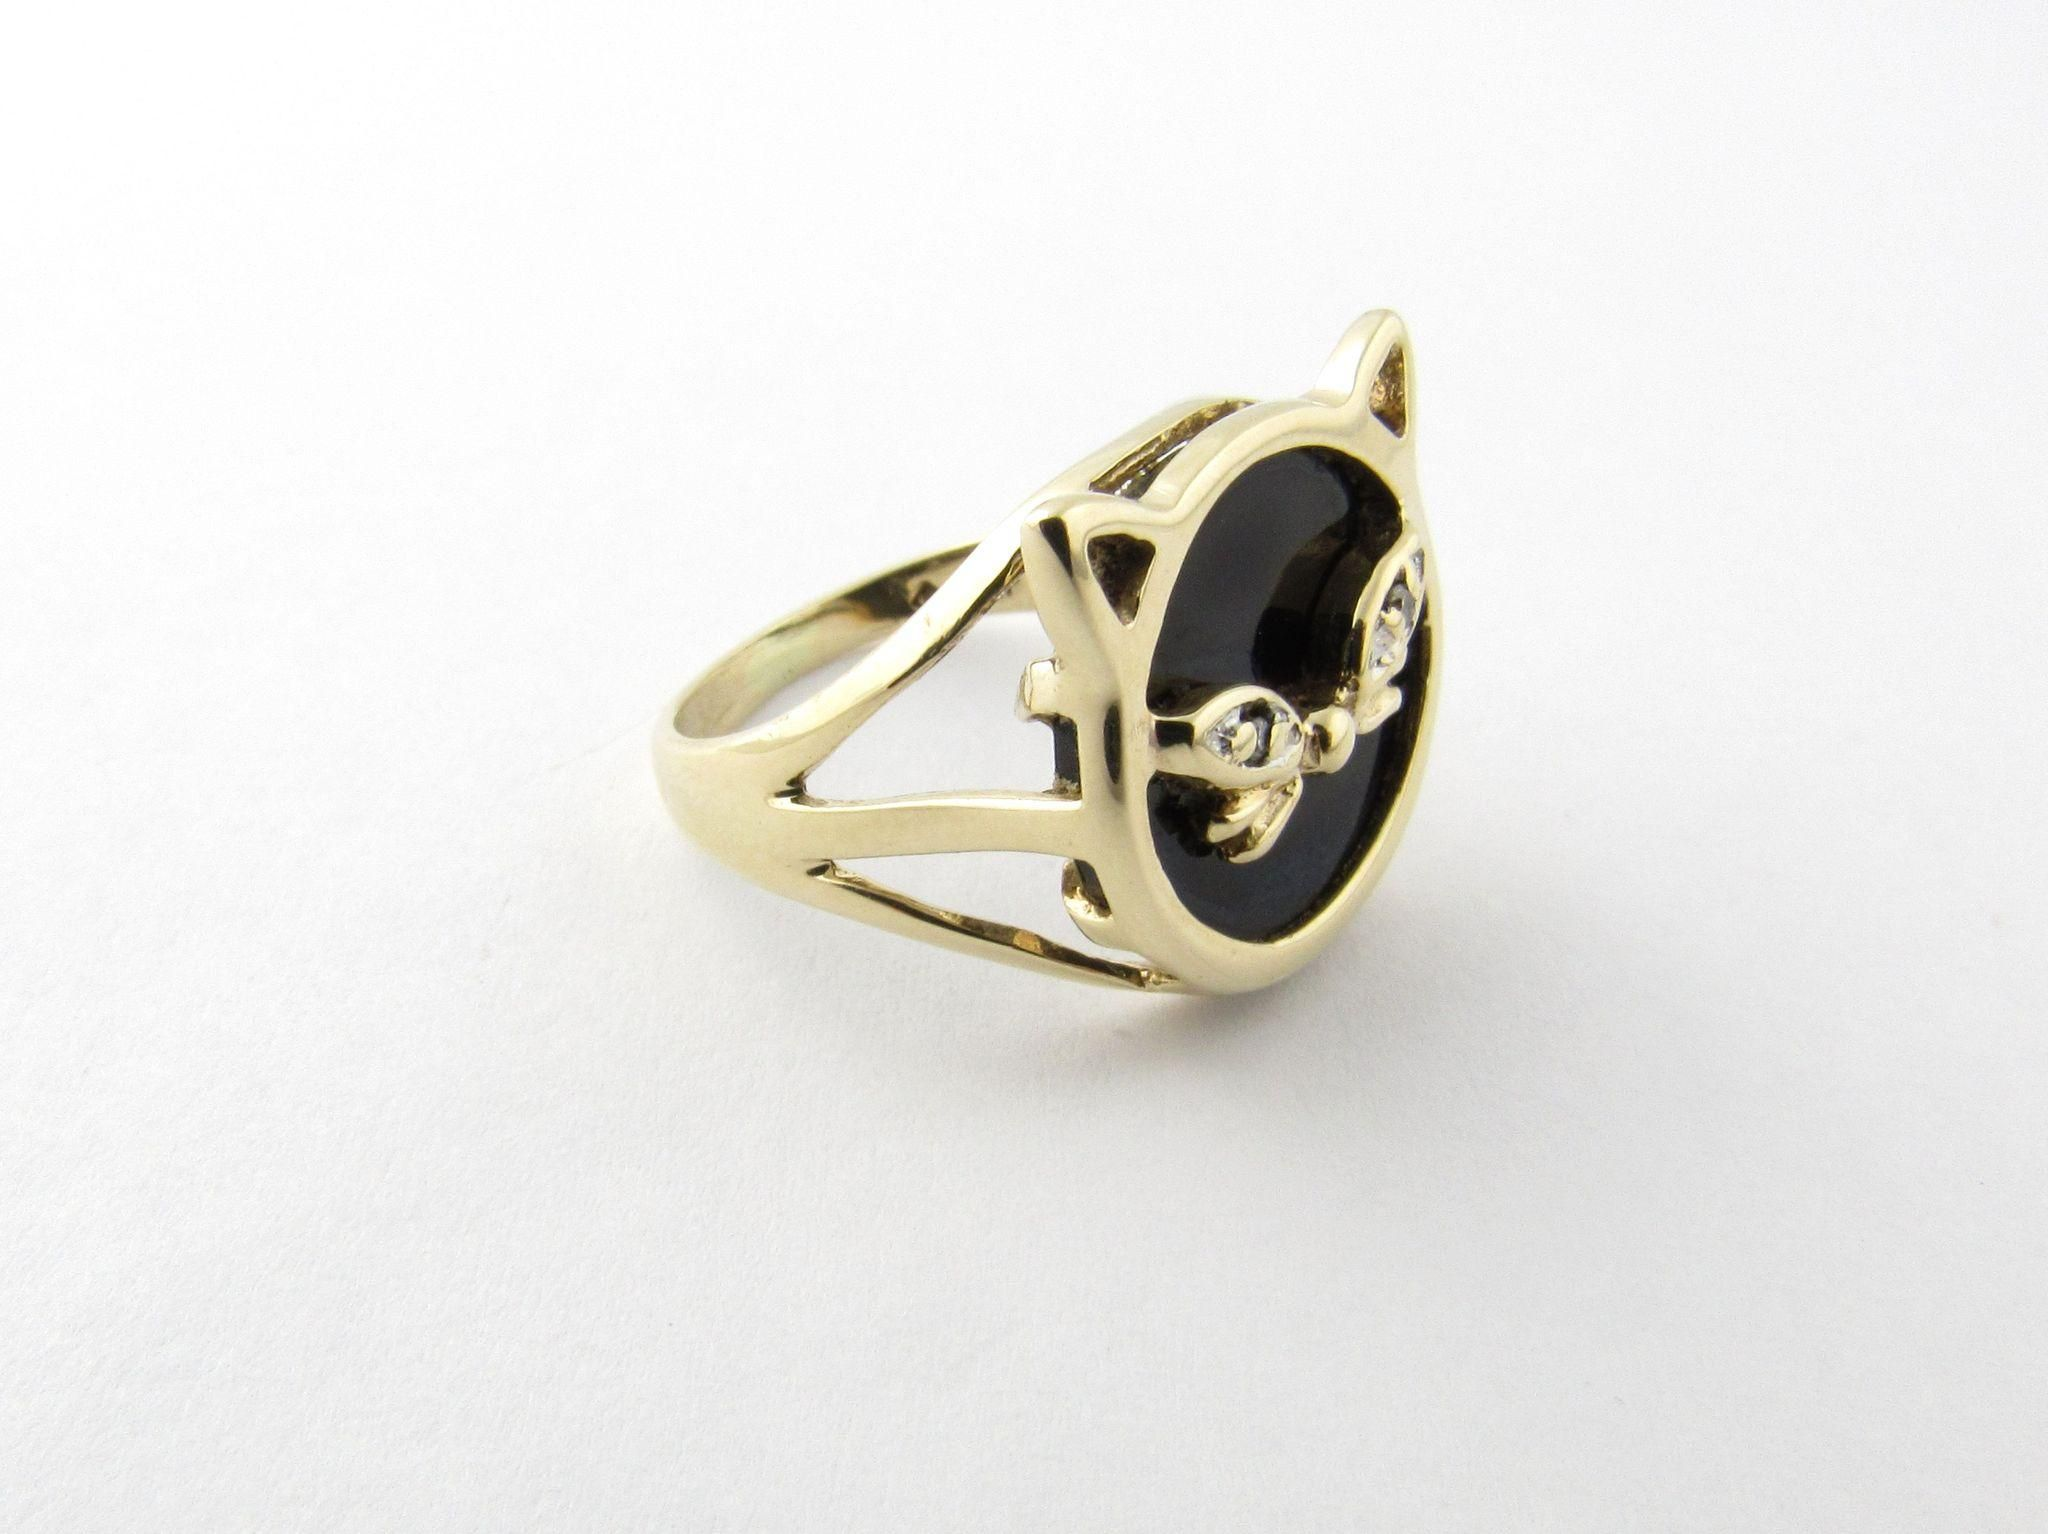 Vintage 10 Karat Yellow Gold Black Onyx Cat Ring Size 4 5 Cat Ring Cat Face Ring Ring Size